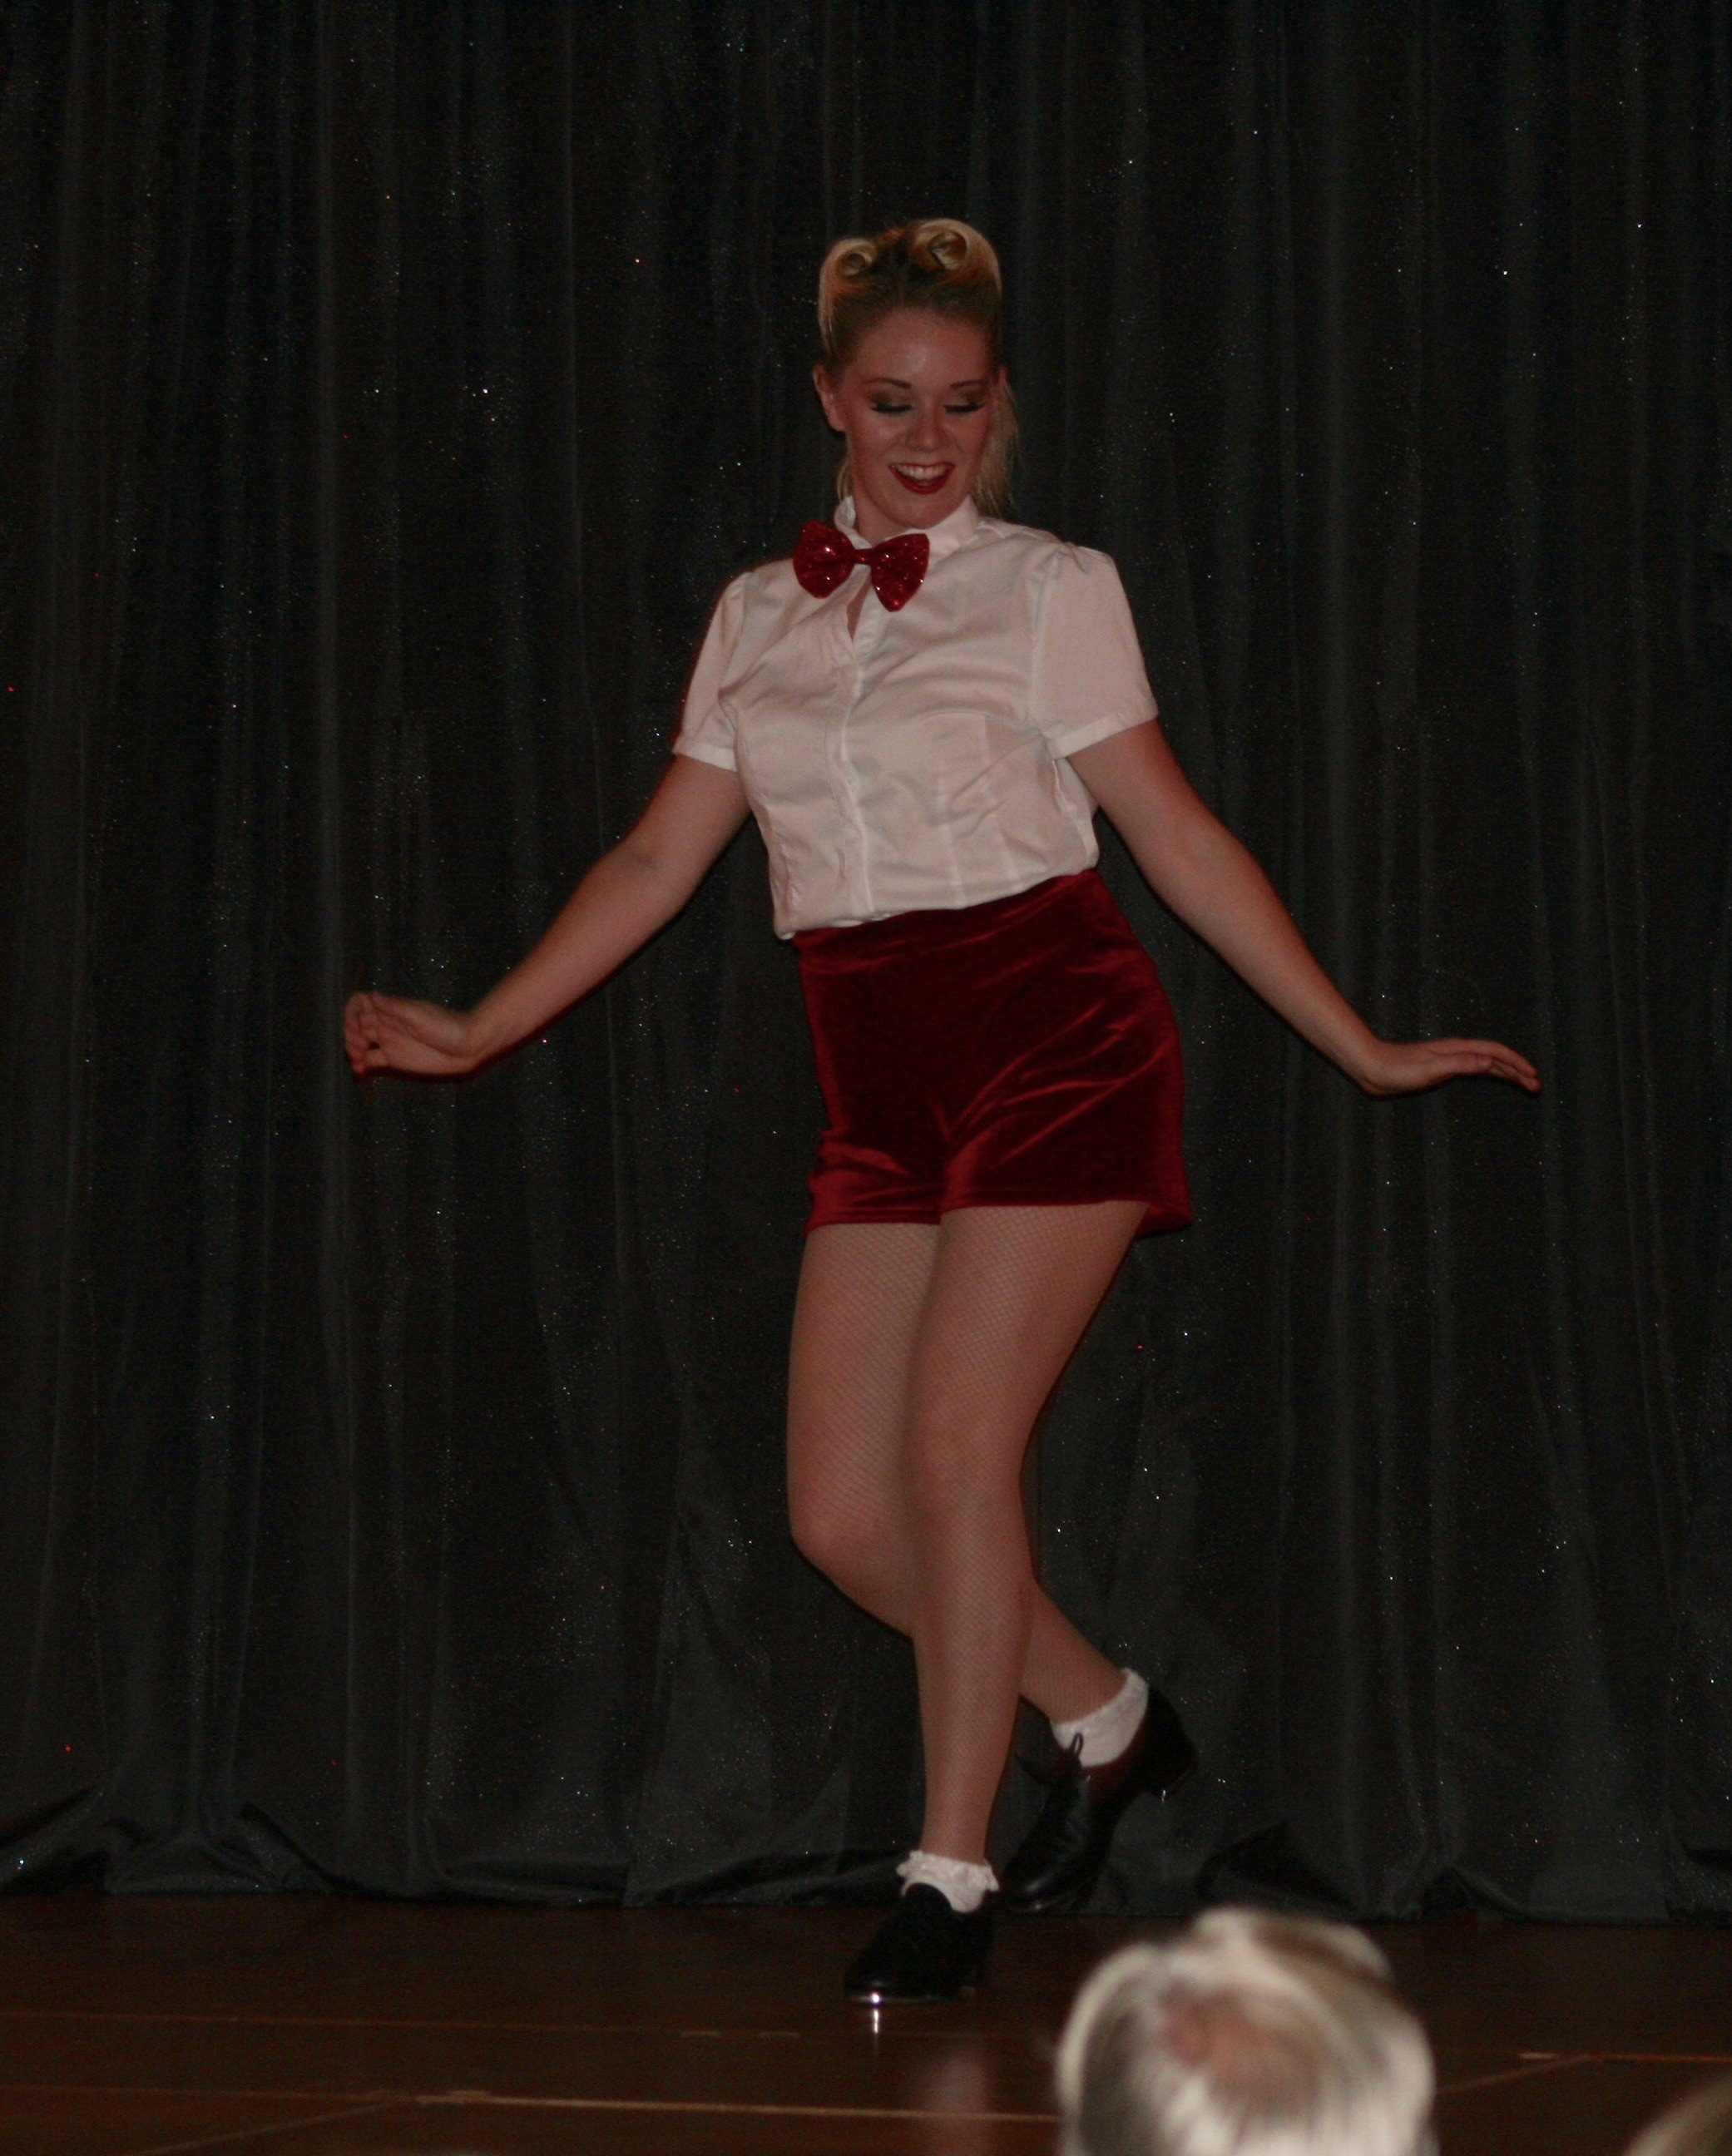 charity fundraising tour tap dancer